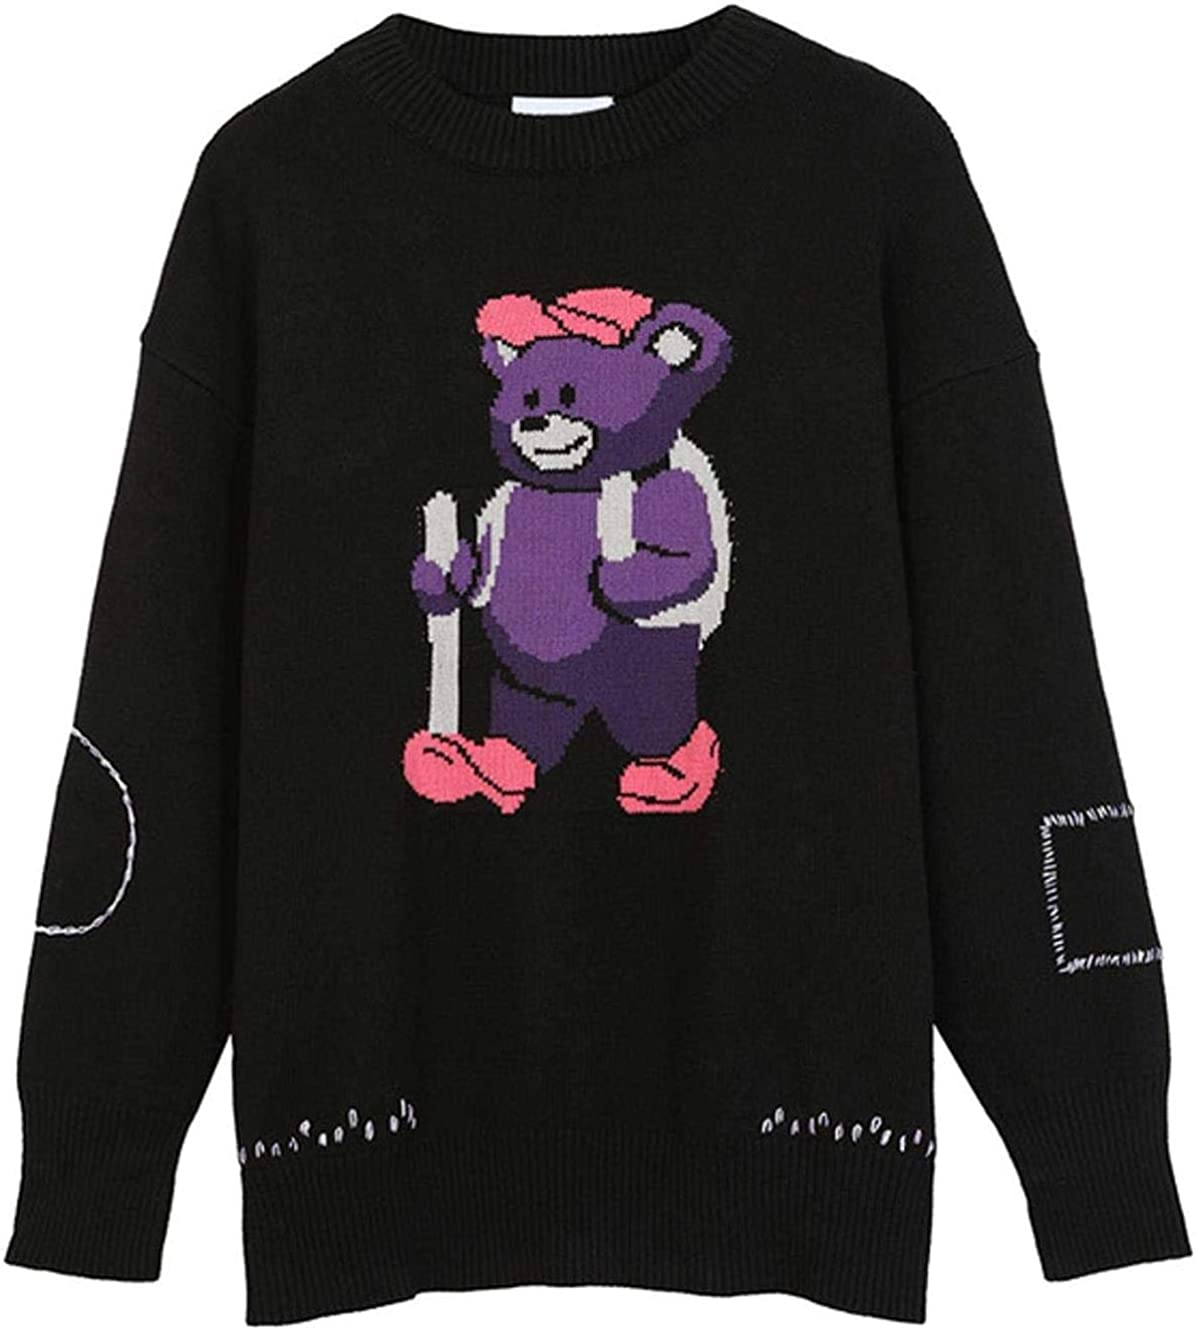 WSBD Sweater Men Cute Cartoon Bear Letter Knitted Pullover Casual Baggy High Street Fashion Streetwear Couple